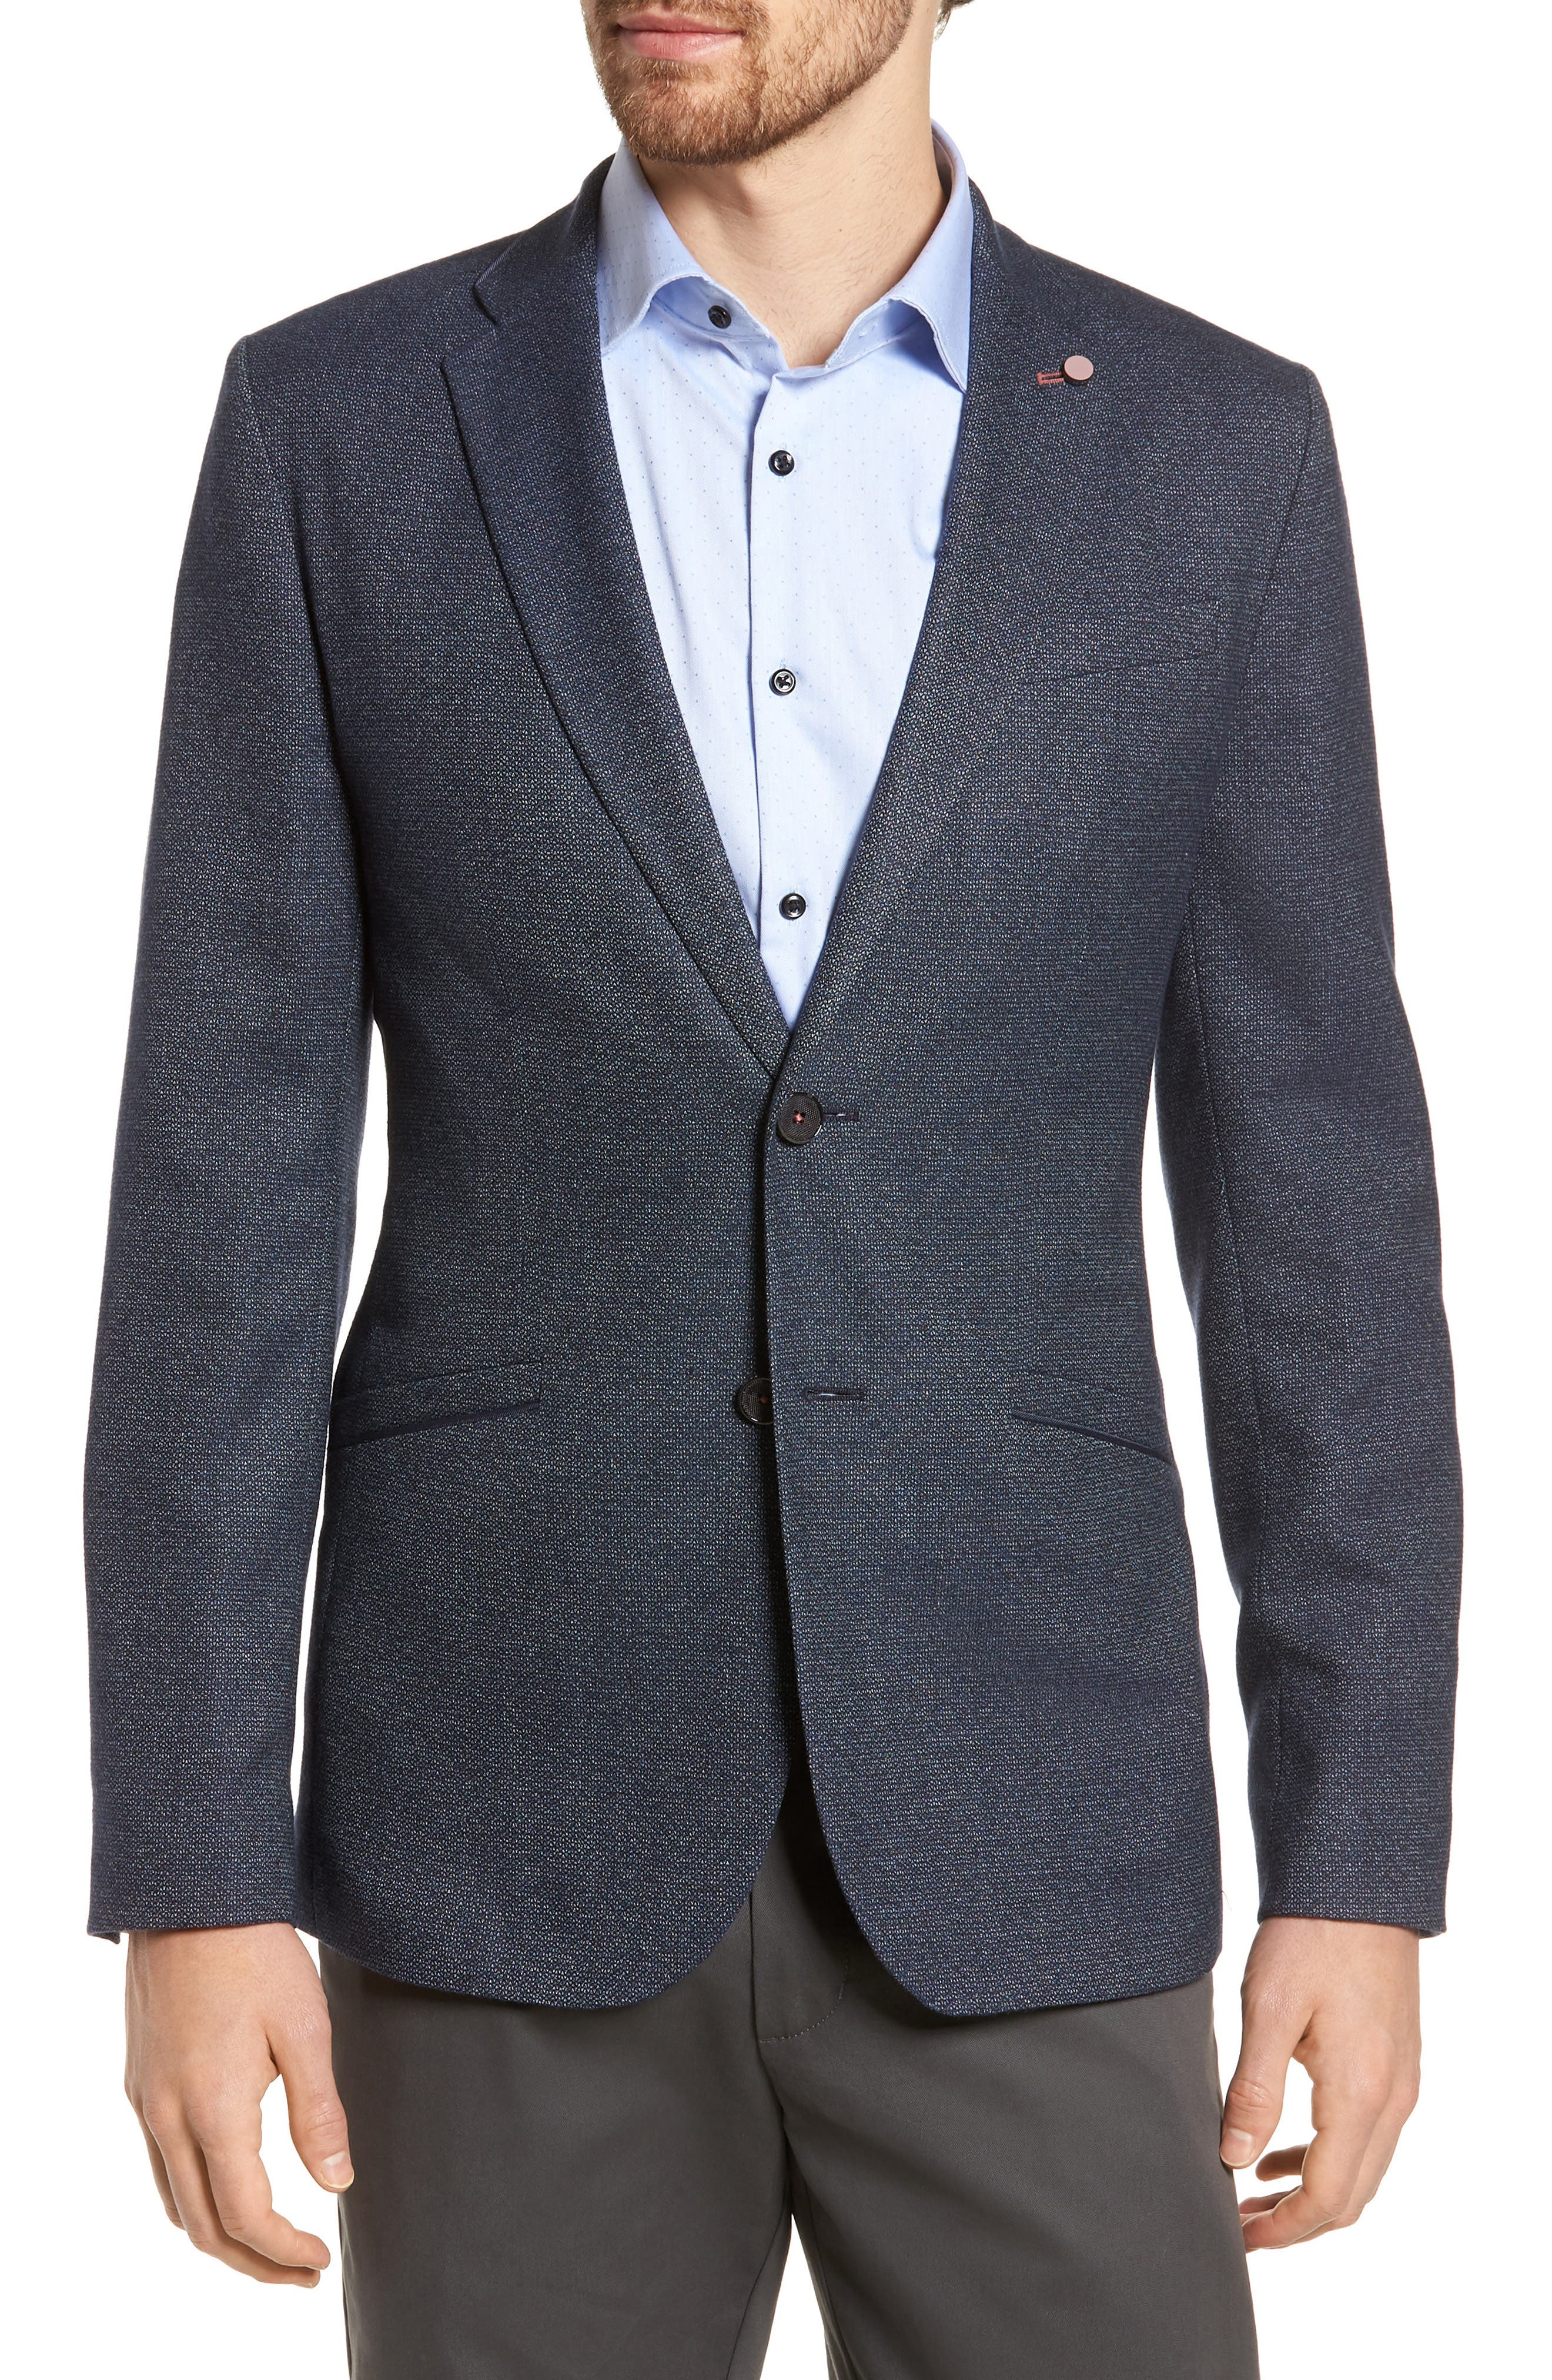 Burkett Trim Fit Blazer,                         Main,                         color,